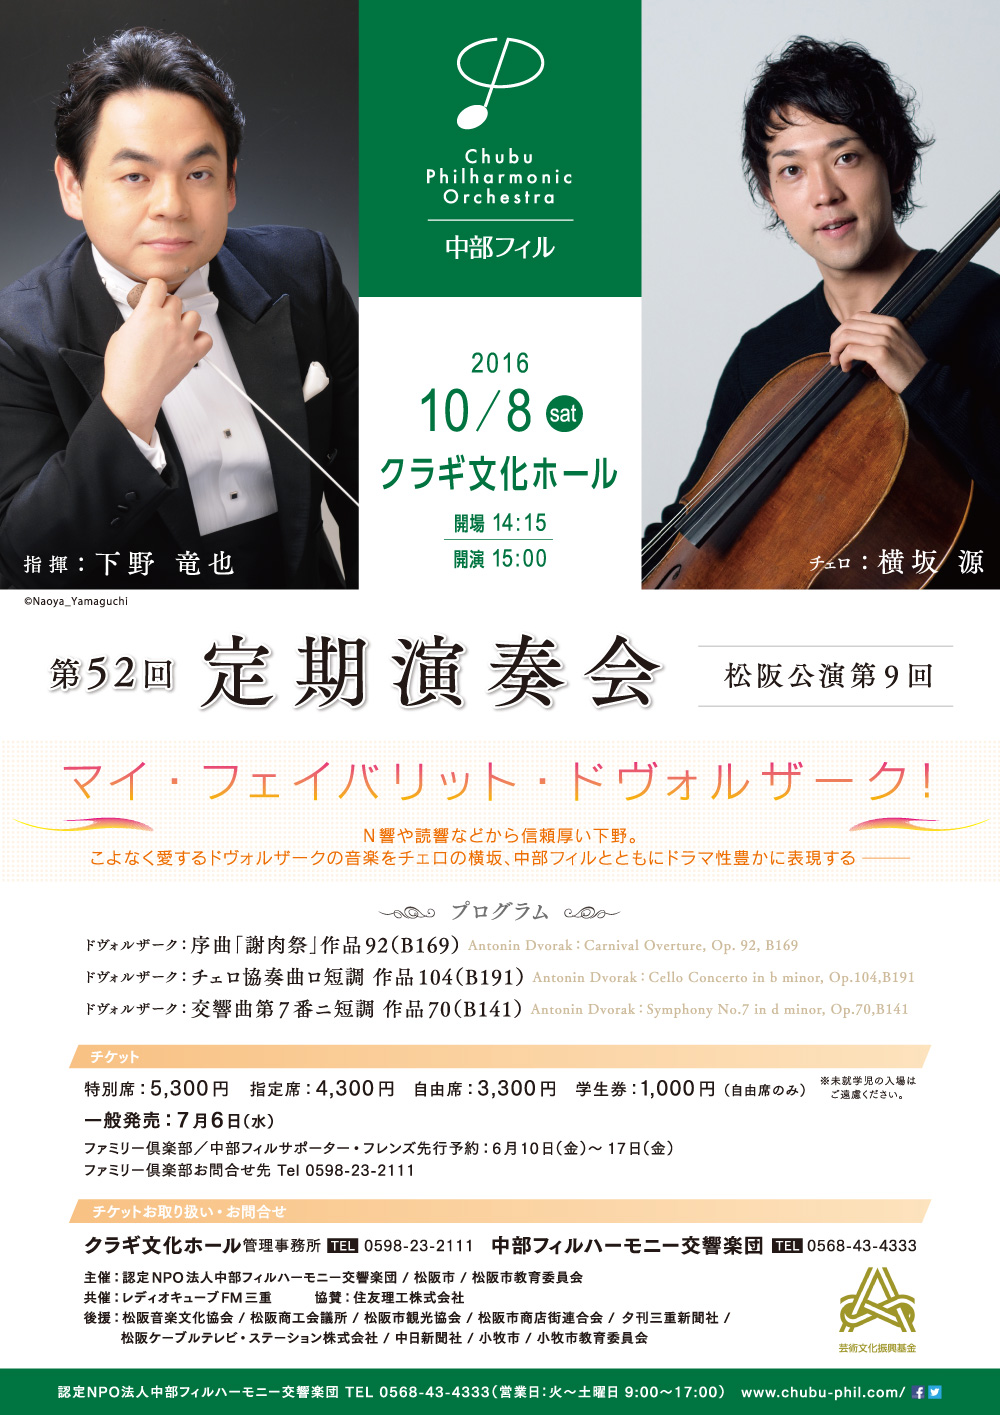 This week's concert (3 October – 9 October, 2016)